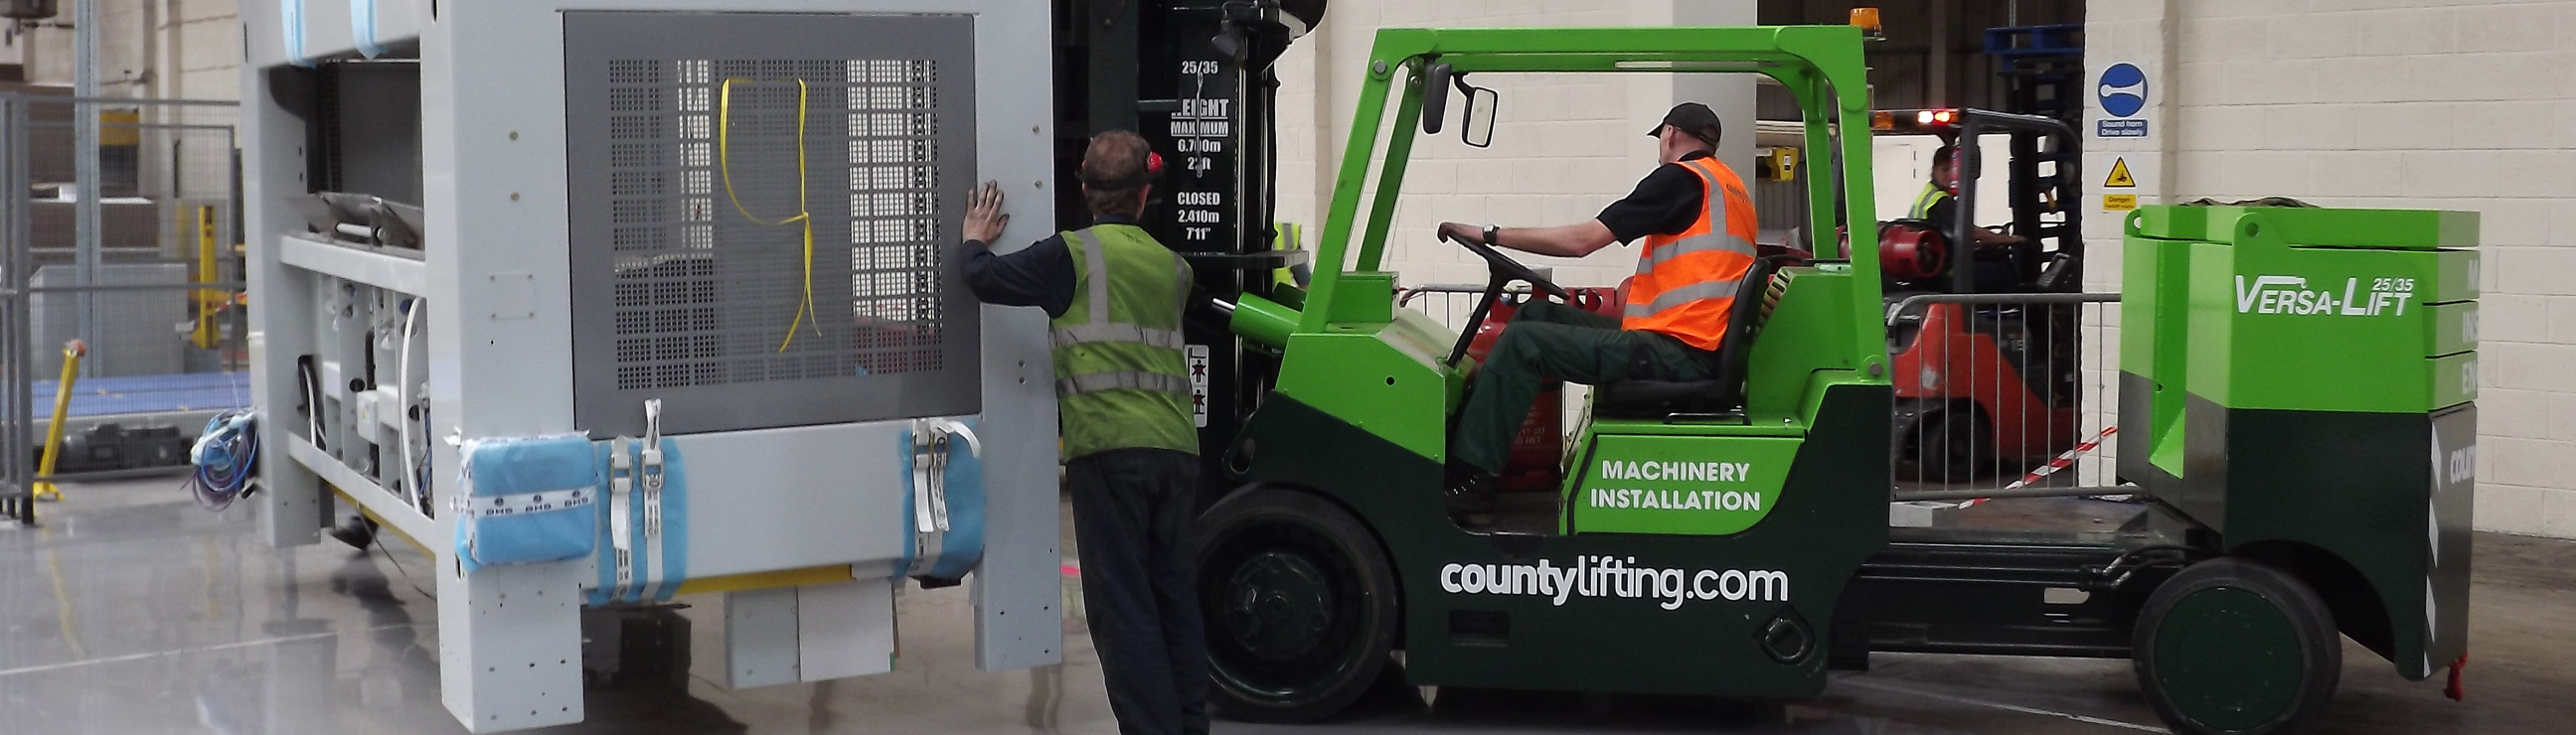 County Lifting branded machinery